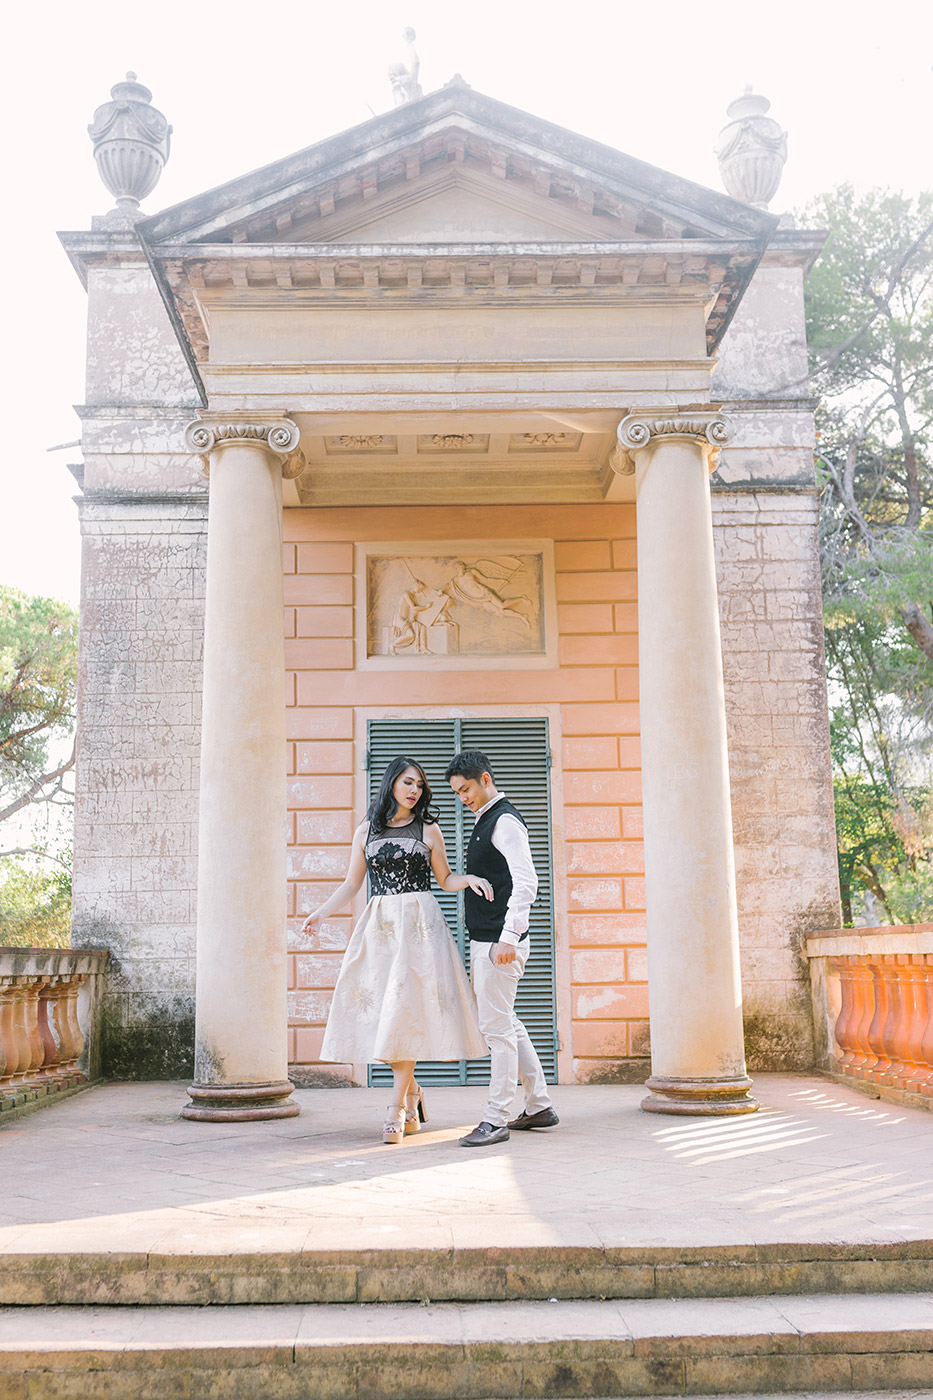 Lovely Elegant Couple Engagement in Barcelona | Fin Art Photographer | Lena Karelova Photography